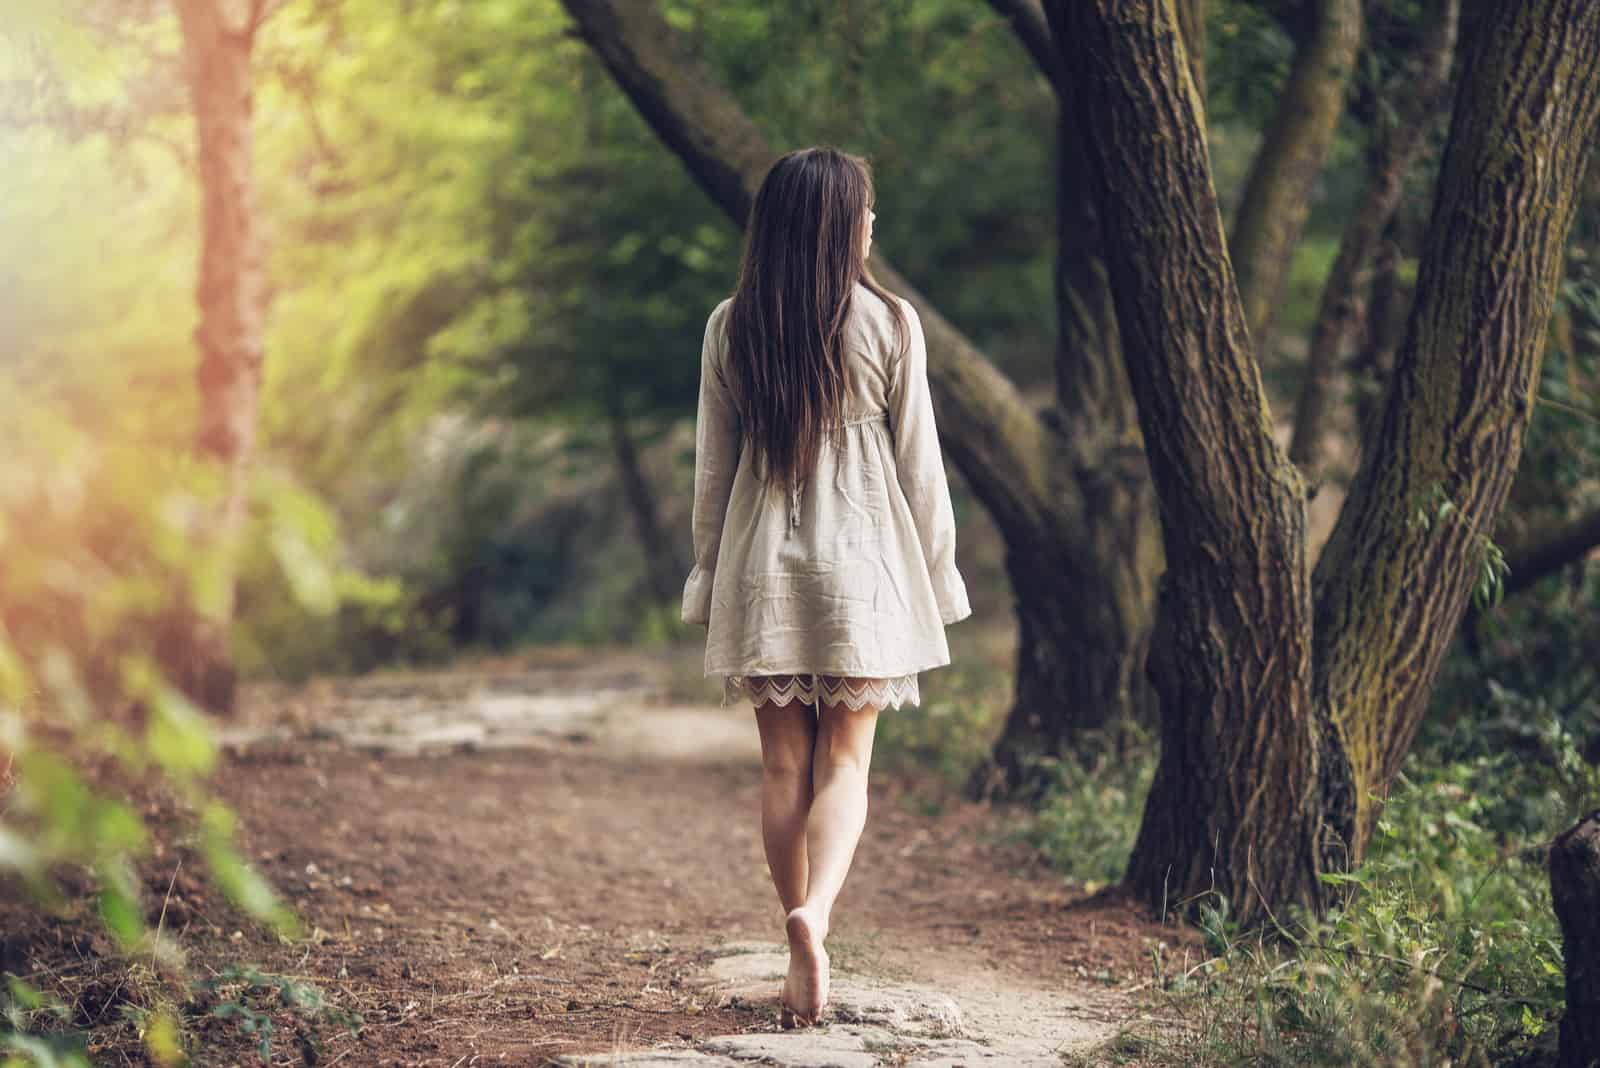 a woman with long brown hair walks in the park